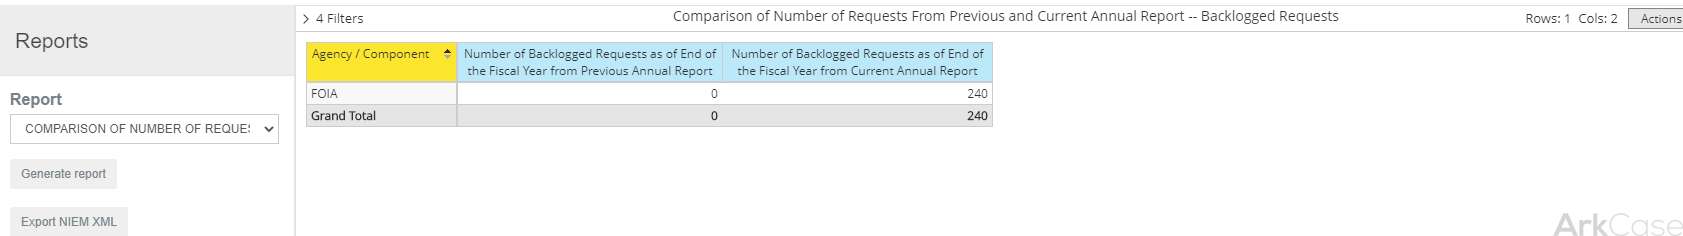 Comparison of Number of Requests From Previous and Current Annual Report --Backlogged Requests